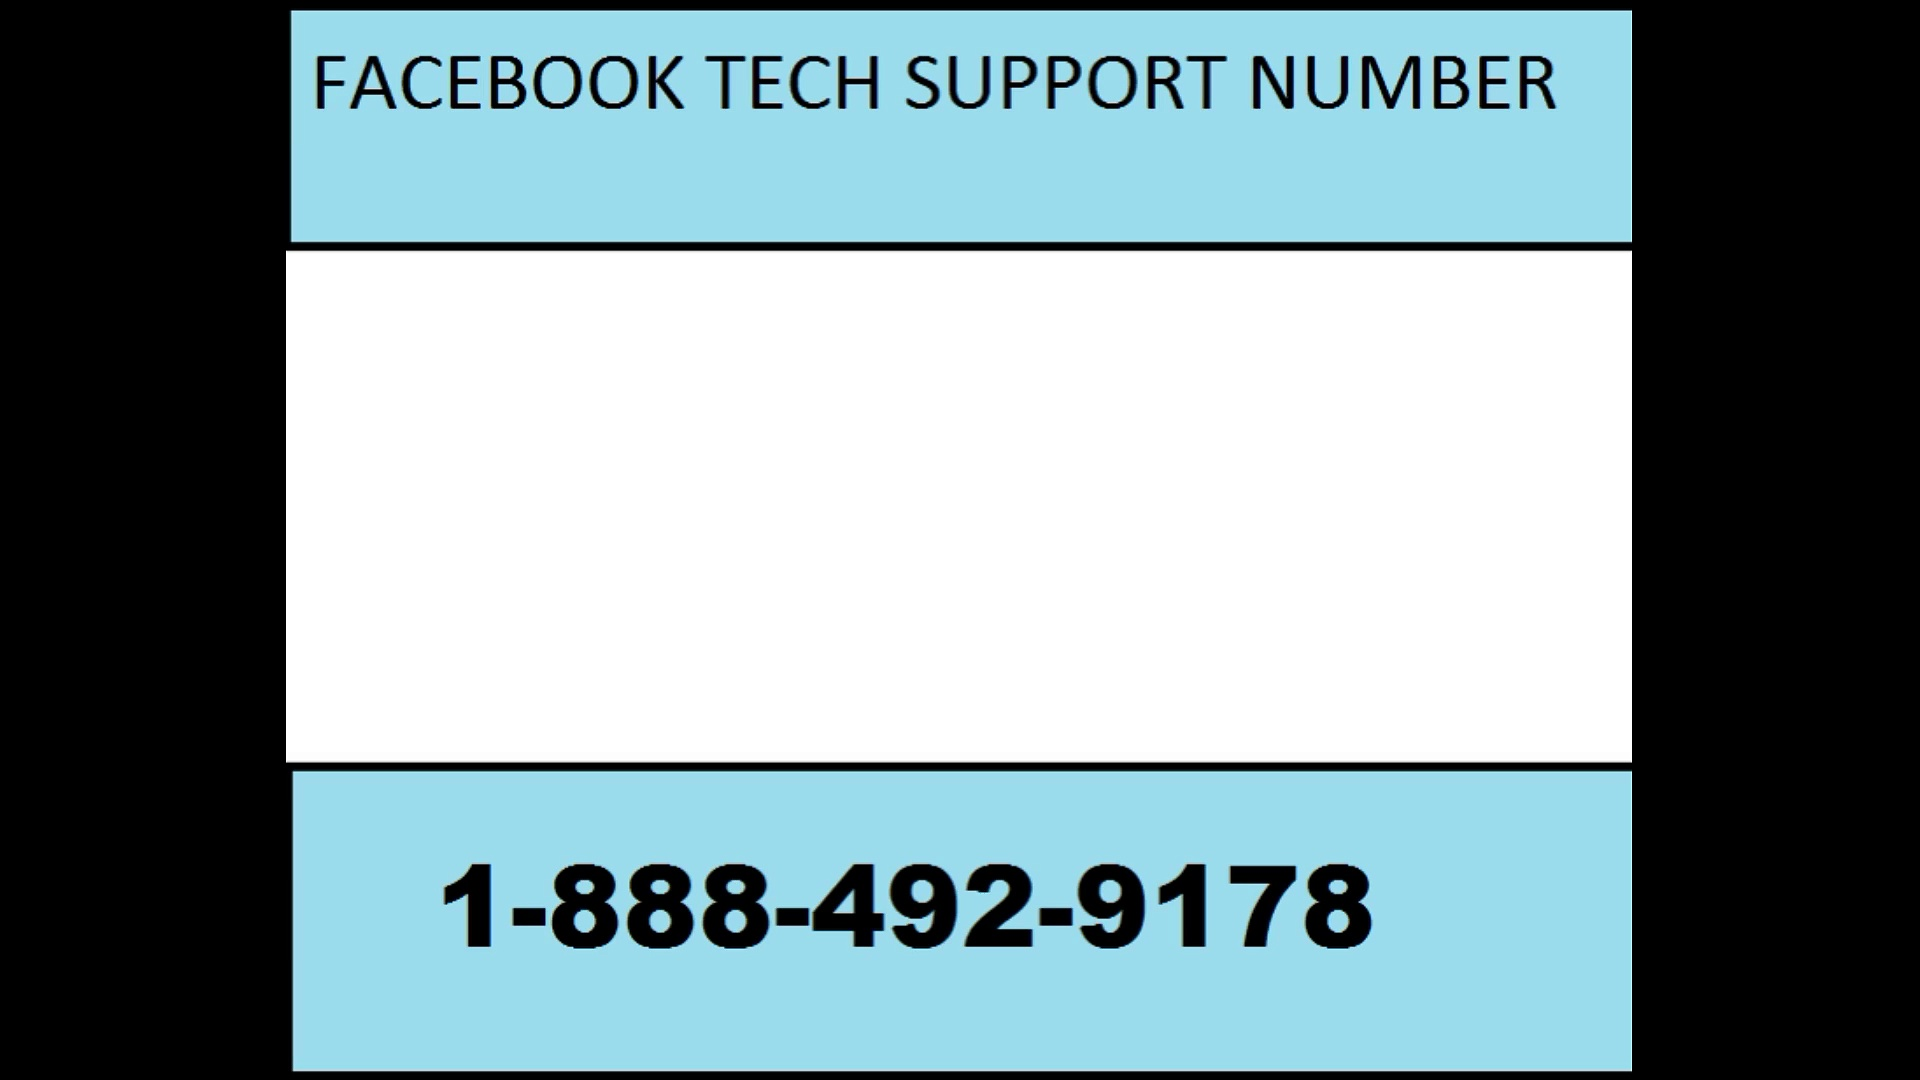 ((( 1-888-492-9178 )) FACEBOOK EMAIL SUPPORT NUMBER TECH SUPPORT PHONE FREE